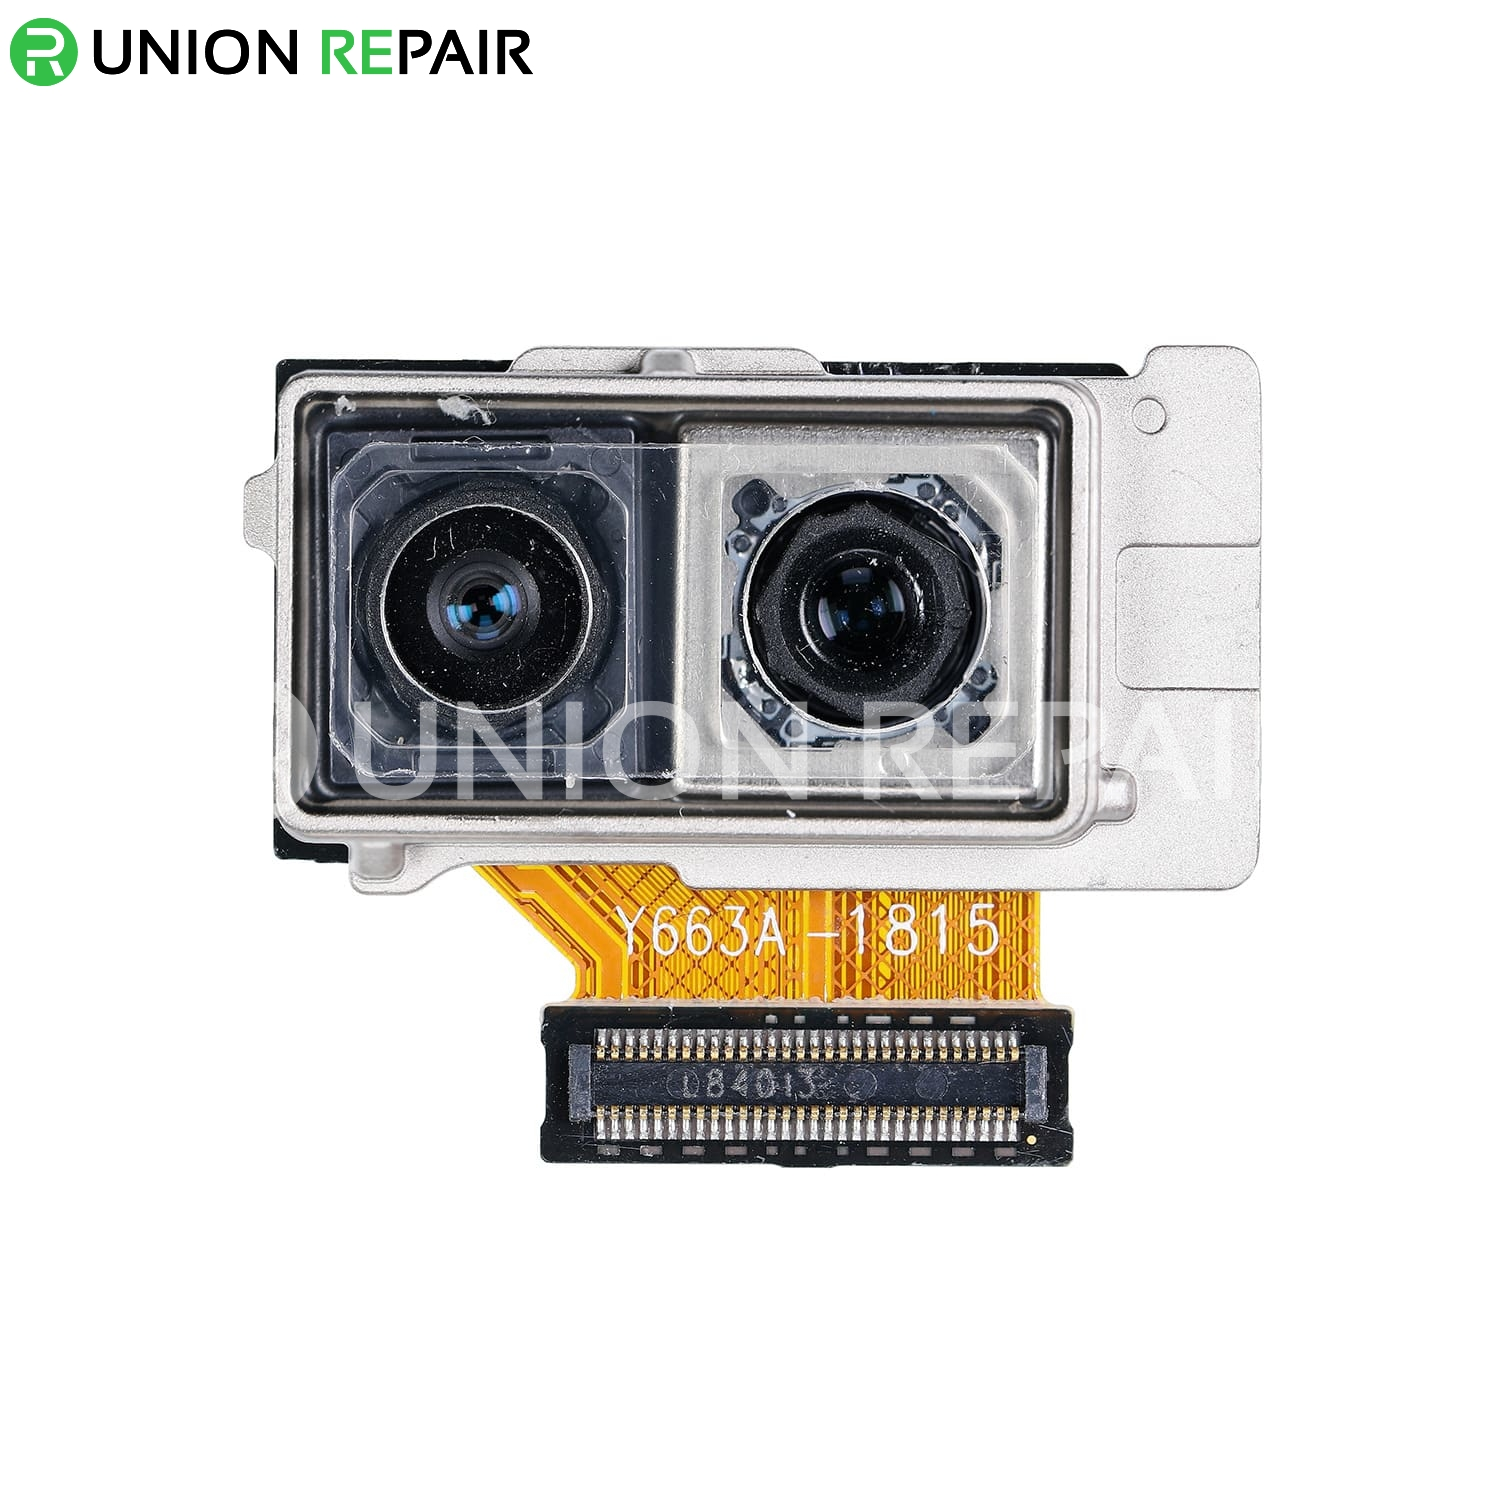 Replacement for LG G7 ThinQ Rear Camera